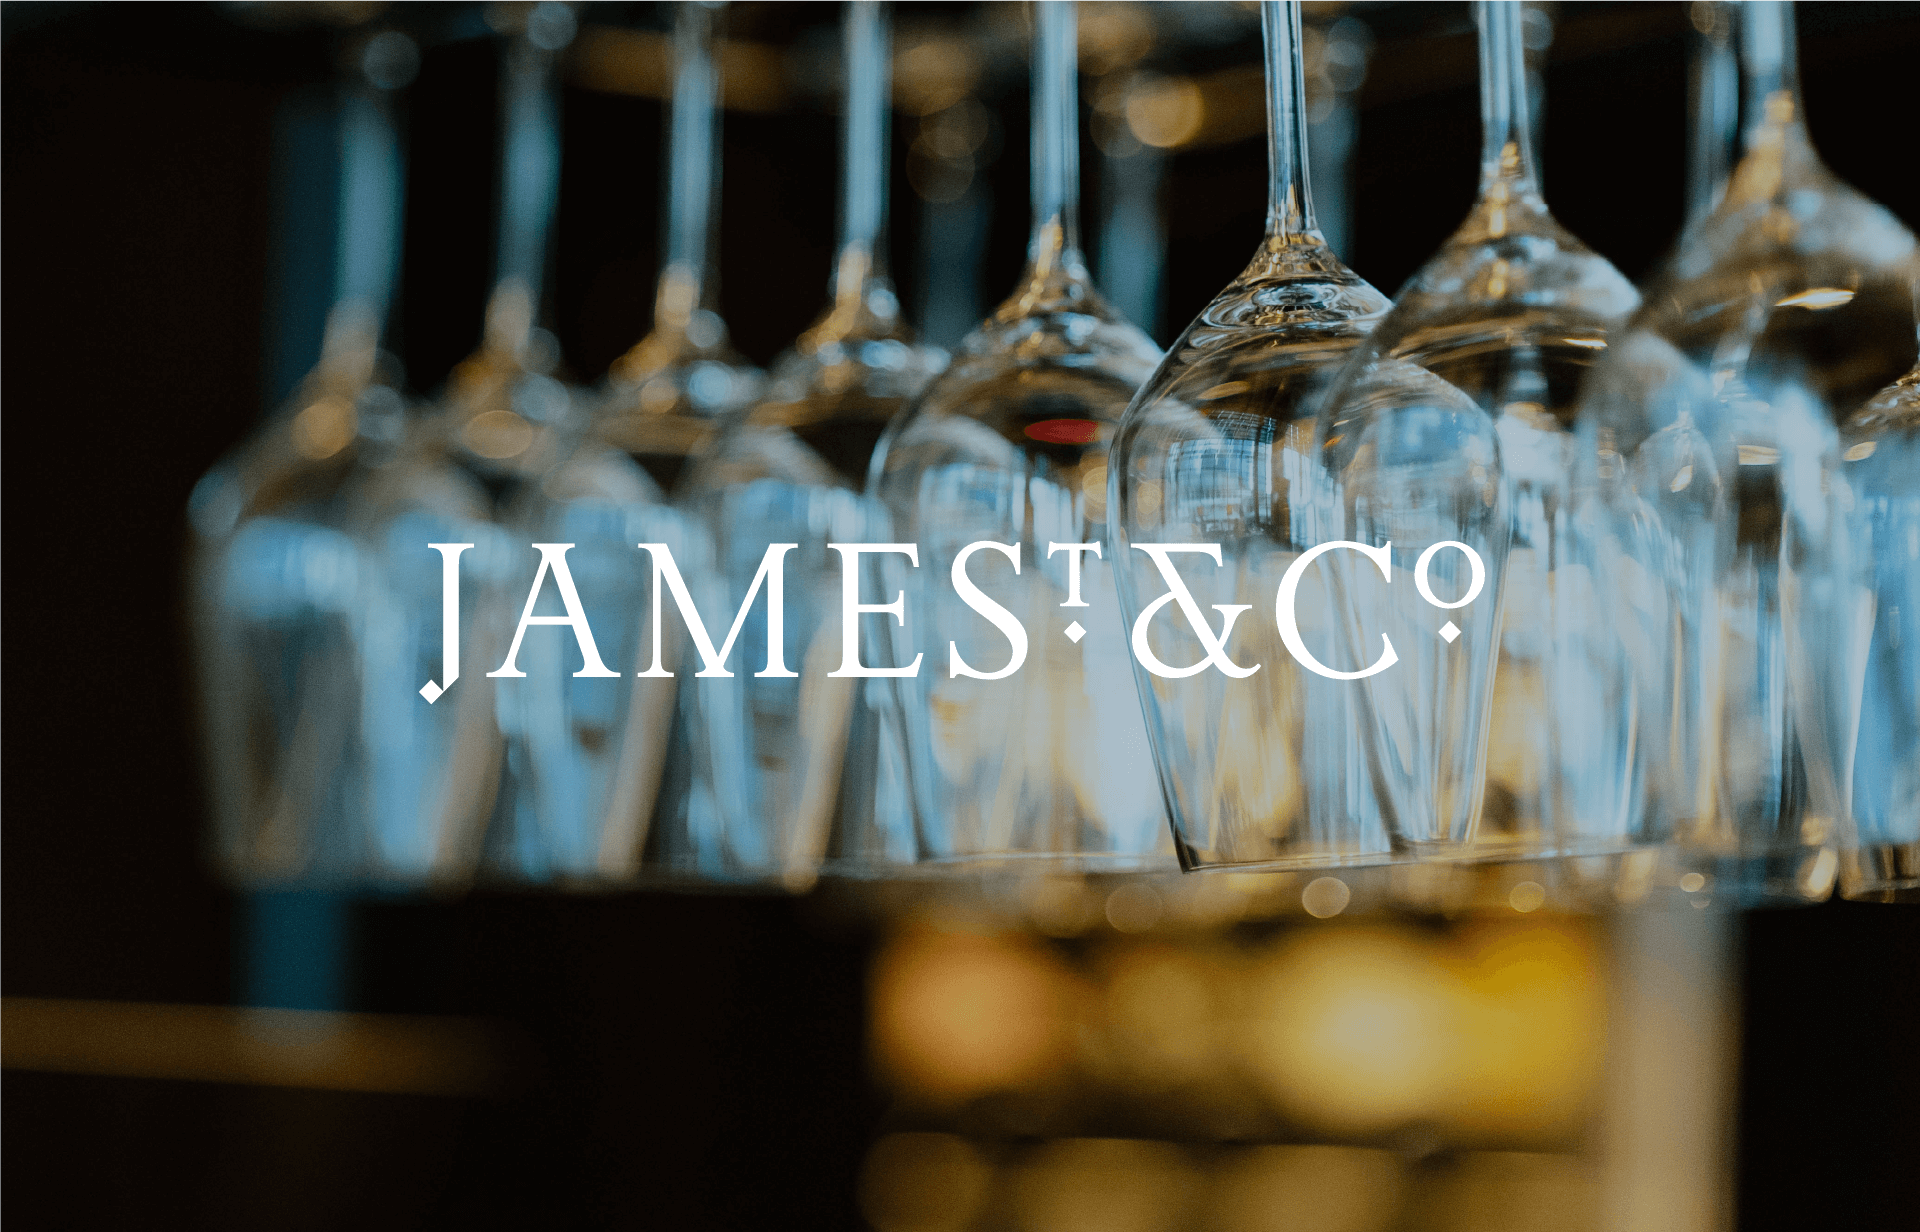 James St. & Co